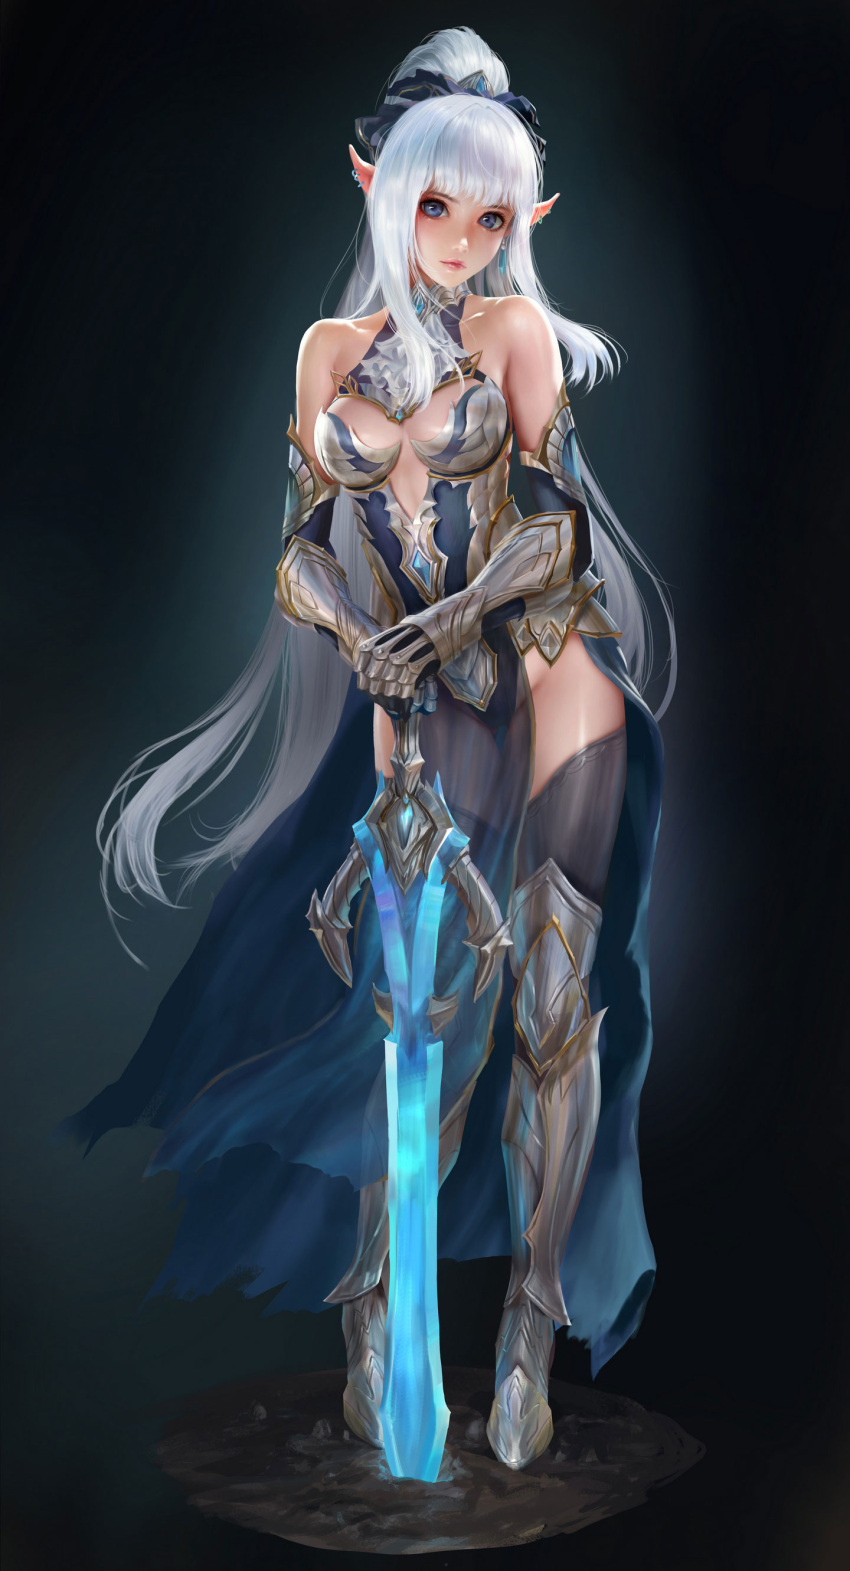 1girl absurdres armor bare_shoulders blue_eyes breasts bruce_zhang_(awpzzggg) closed_mouth collarbone commentary earrings elf full_body gauntlets groin hands_on_hilt high_ponytail highres jewelry looking_at_viewer medium_breasts original own_hands_together planted_sword planted_weapon pointy_ears see-through sidelocks solo standing sword weapon white_hair